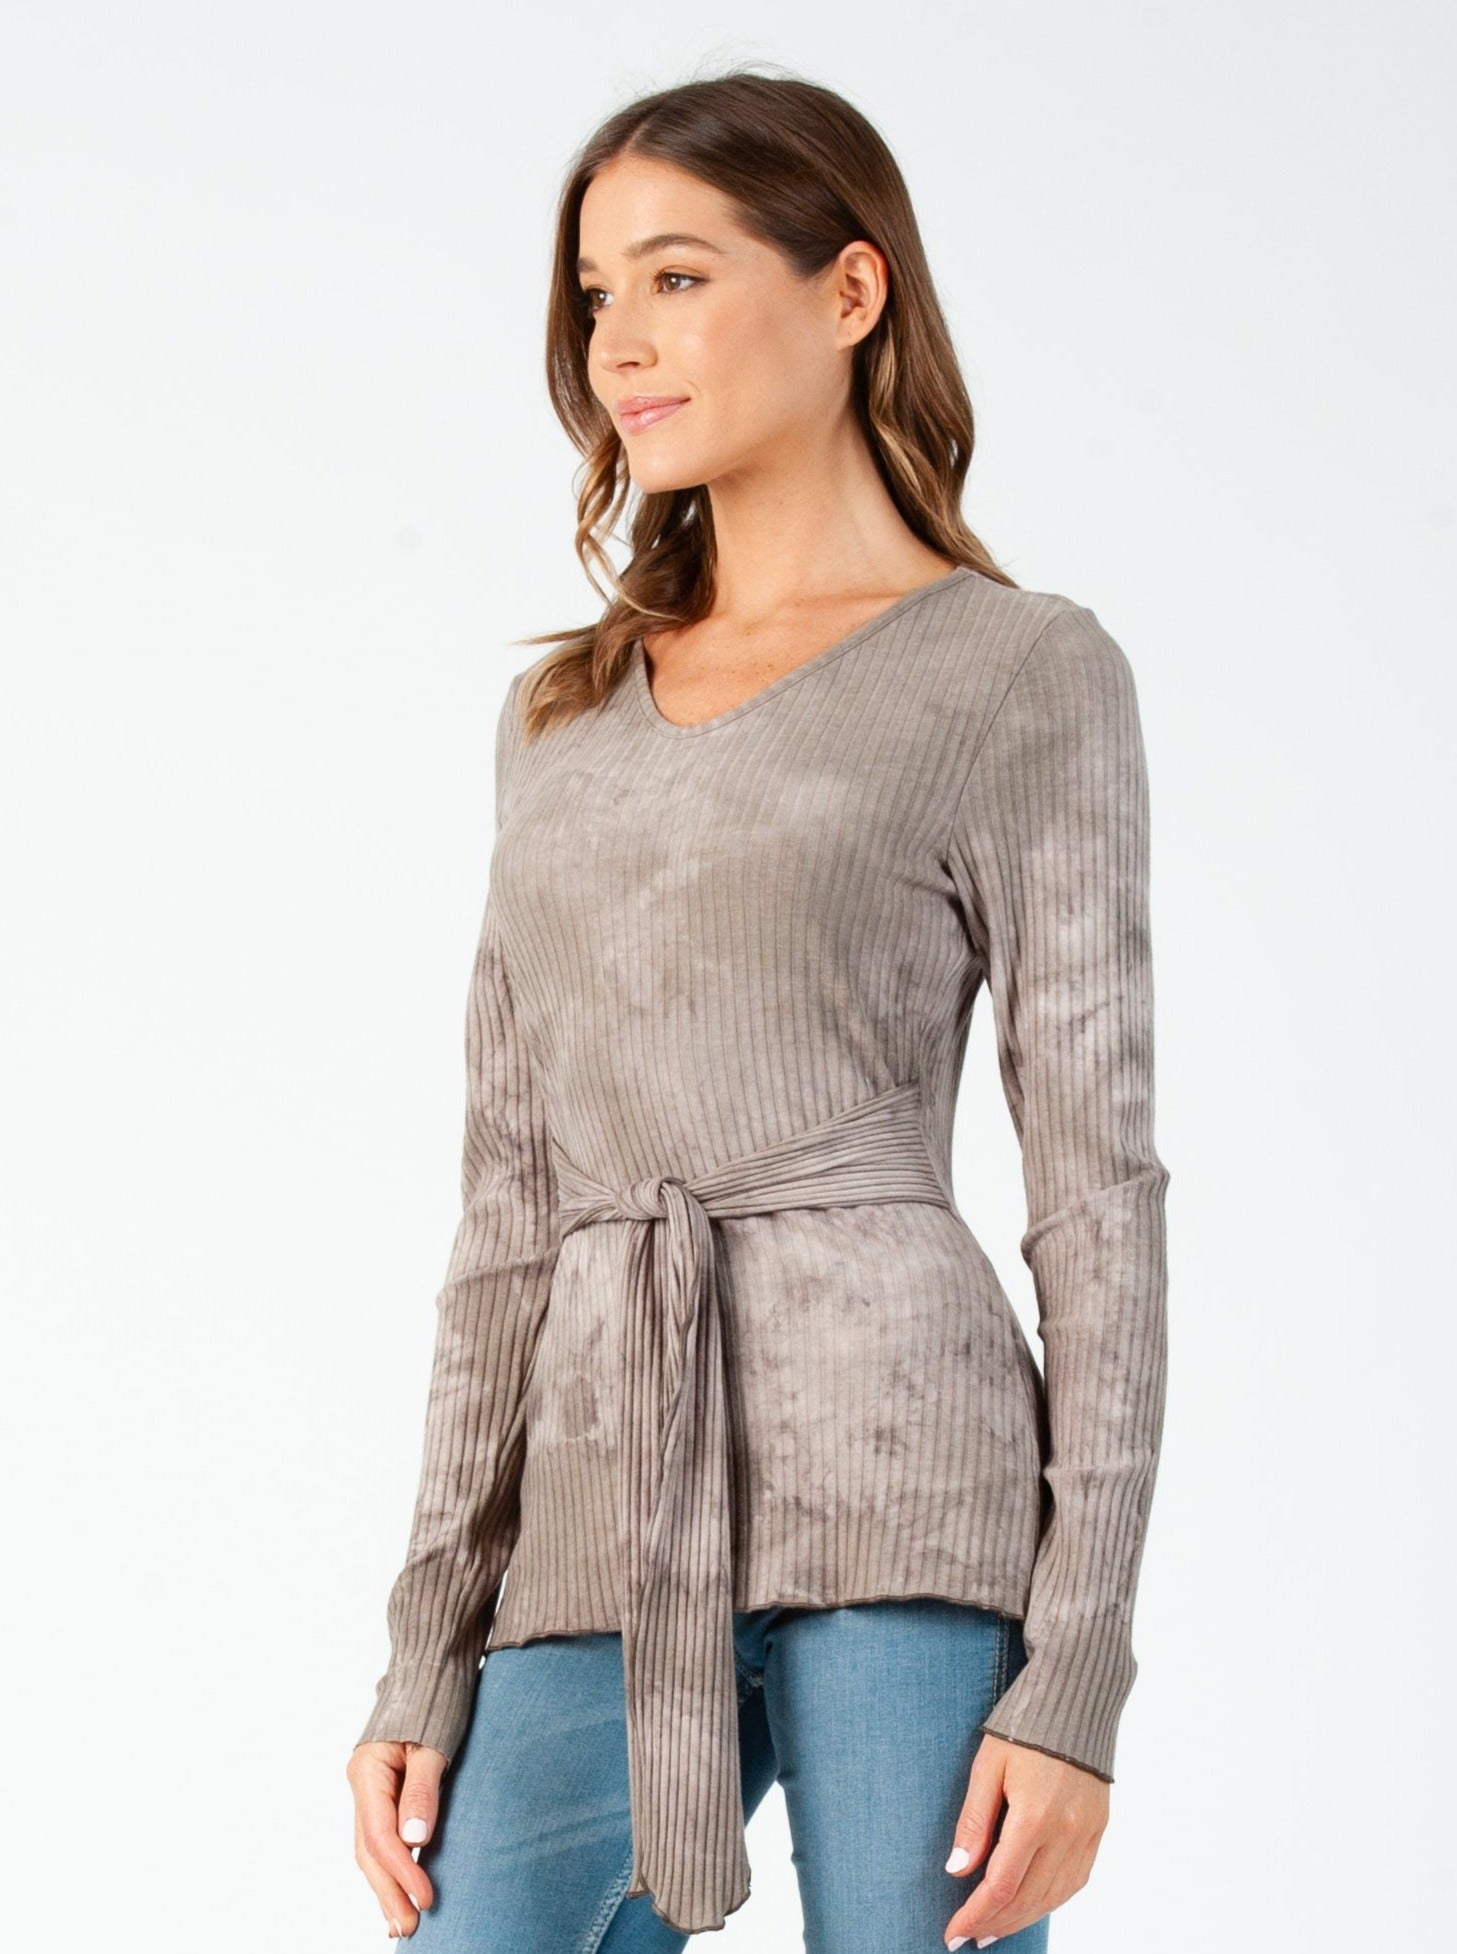 CATALINA LONG SLEEVE TOP |  TAUPE CLOUD